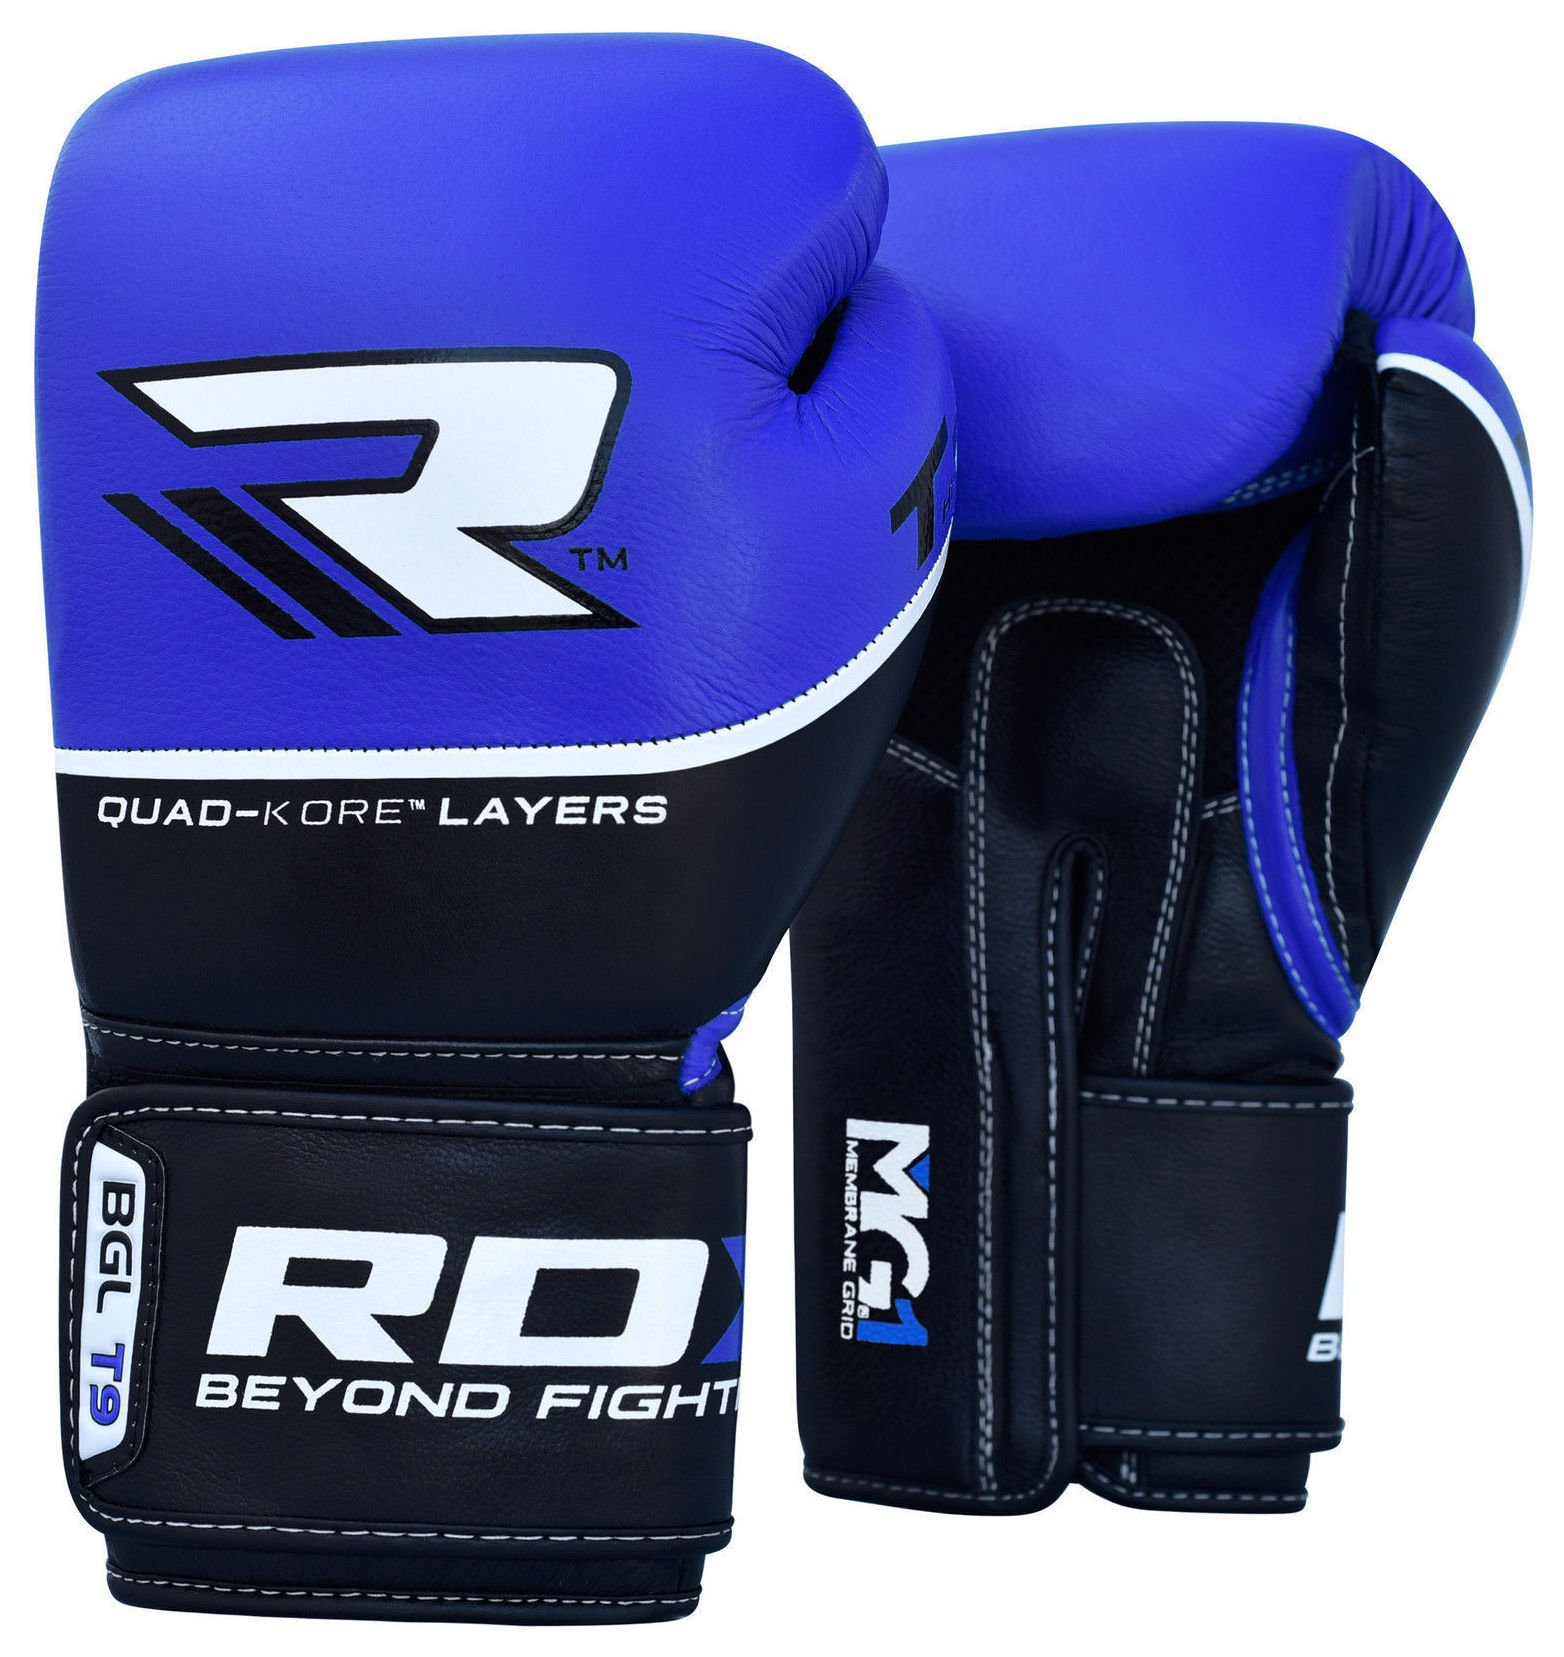 RDX - Quad Kore 14oz Boxing Gloves - Blue lowest price